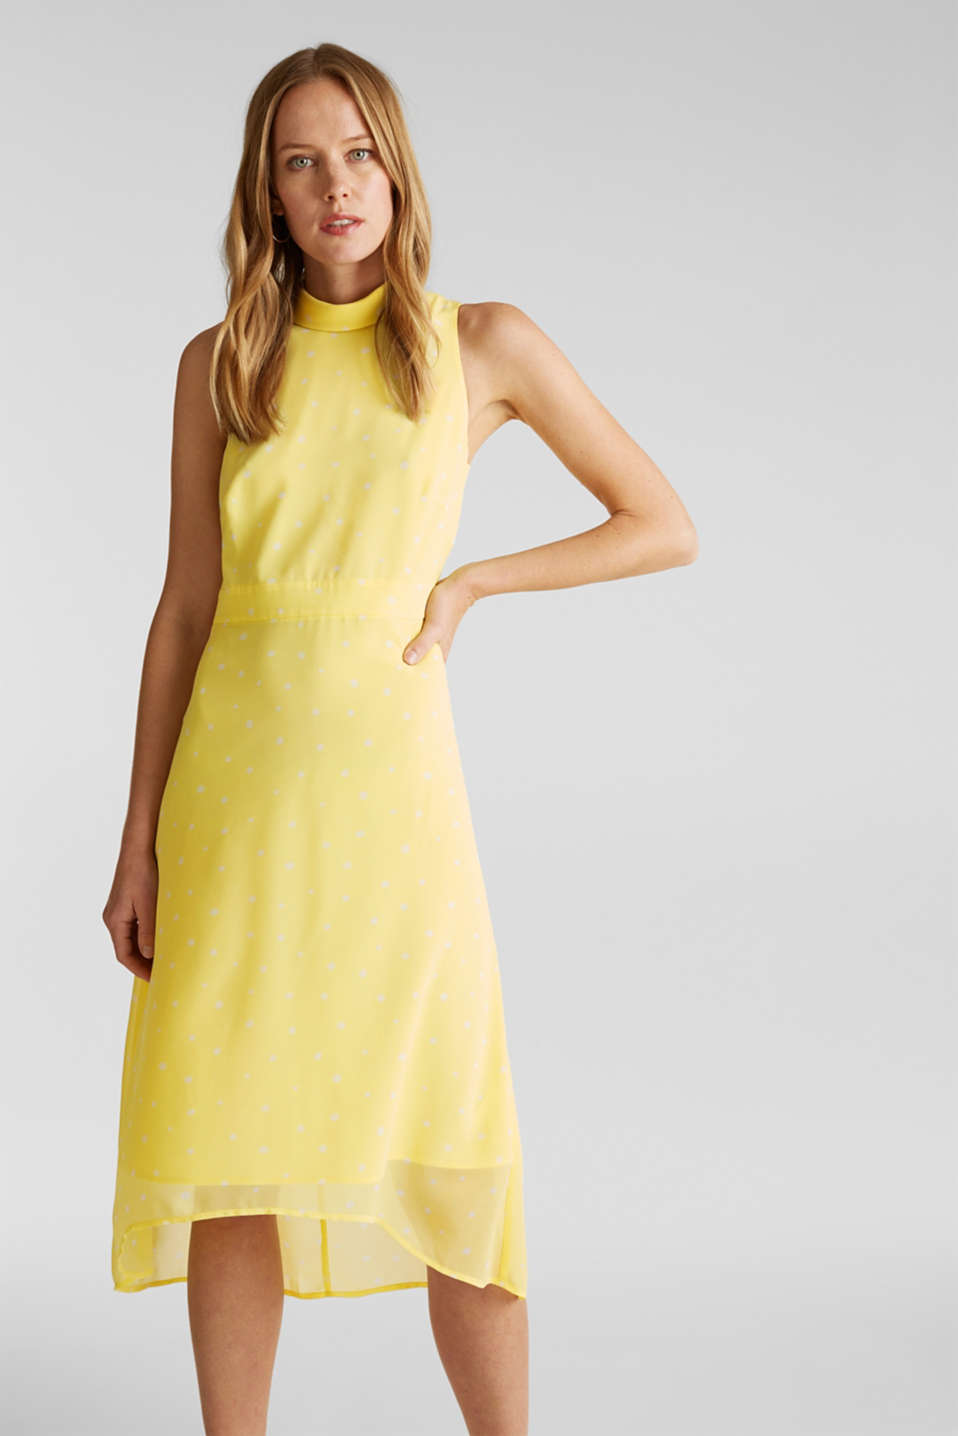 Esprit - Chiffon dress with a high-low hem